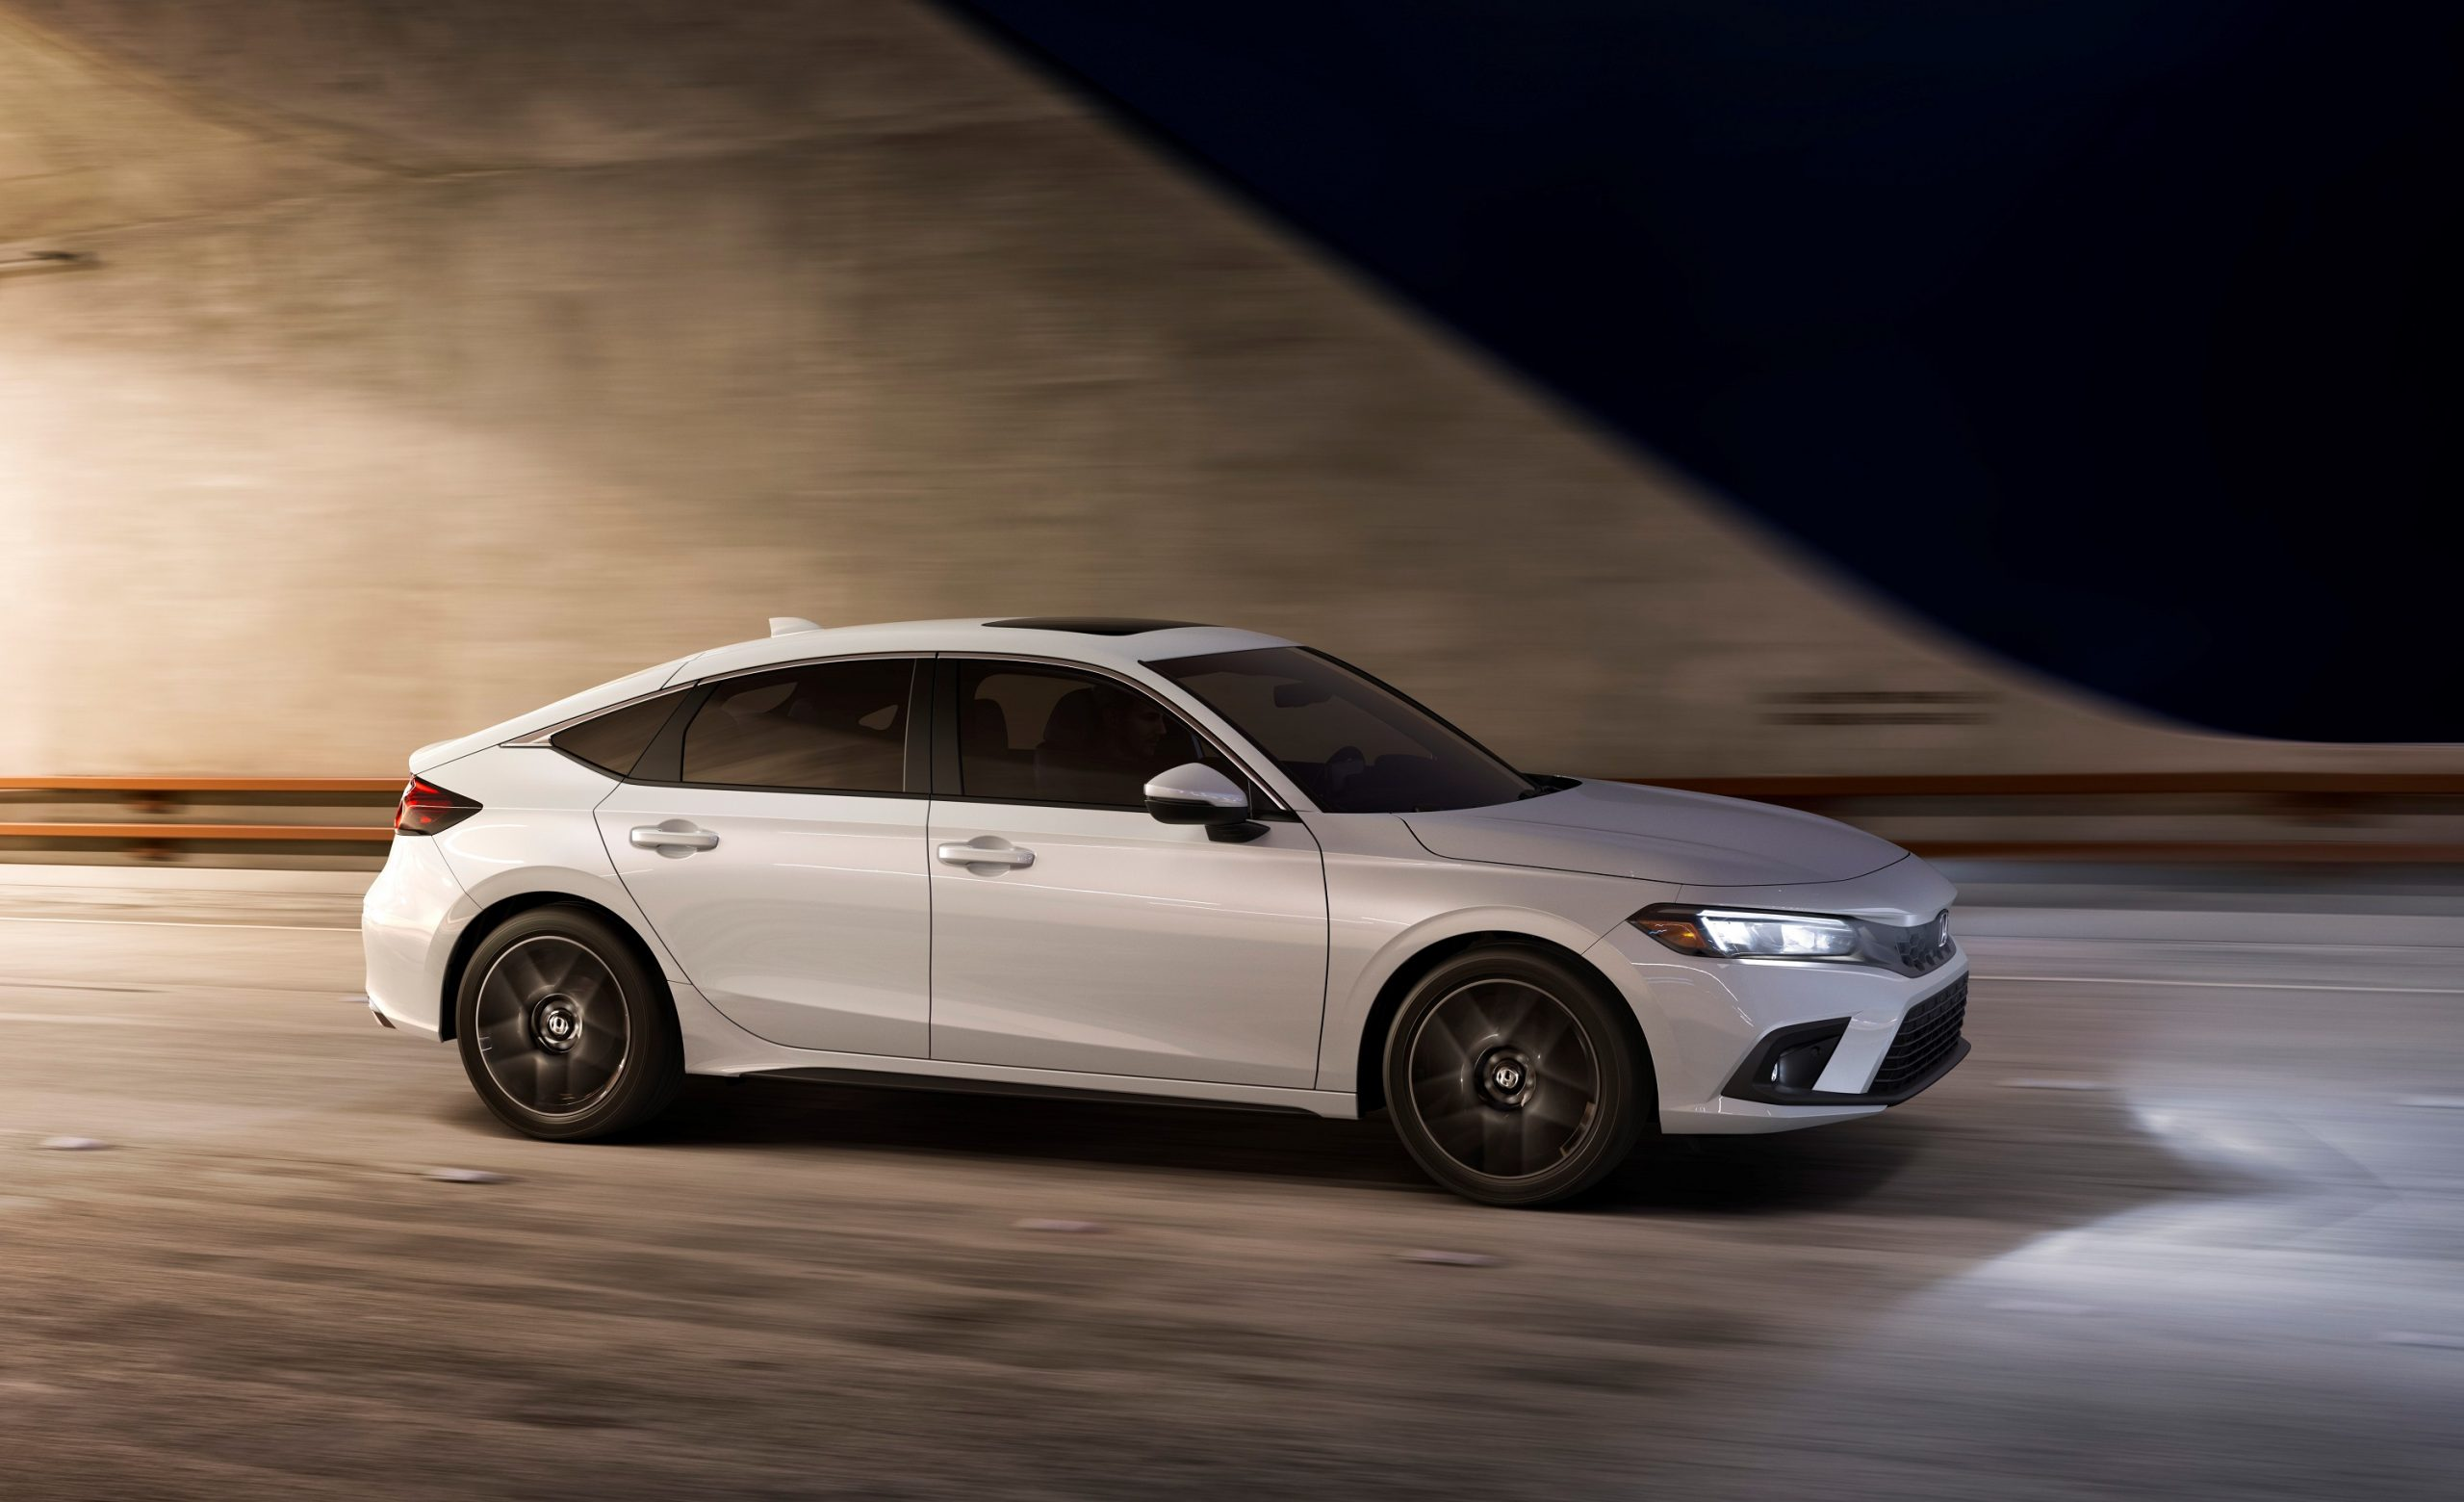 A white 2022 Honda Civic hatch photographed in a tunnel, shot in profile